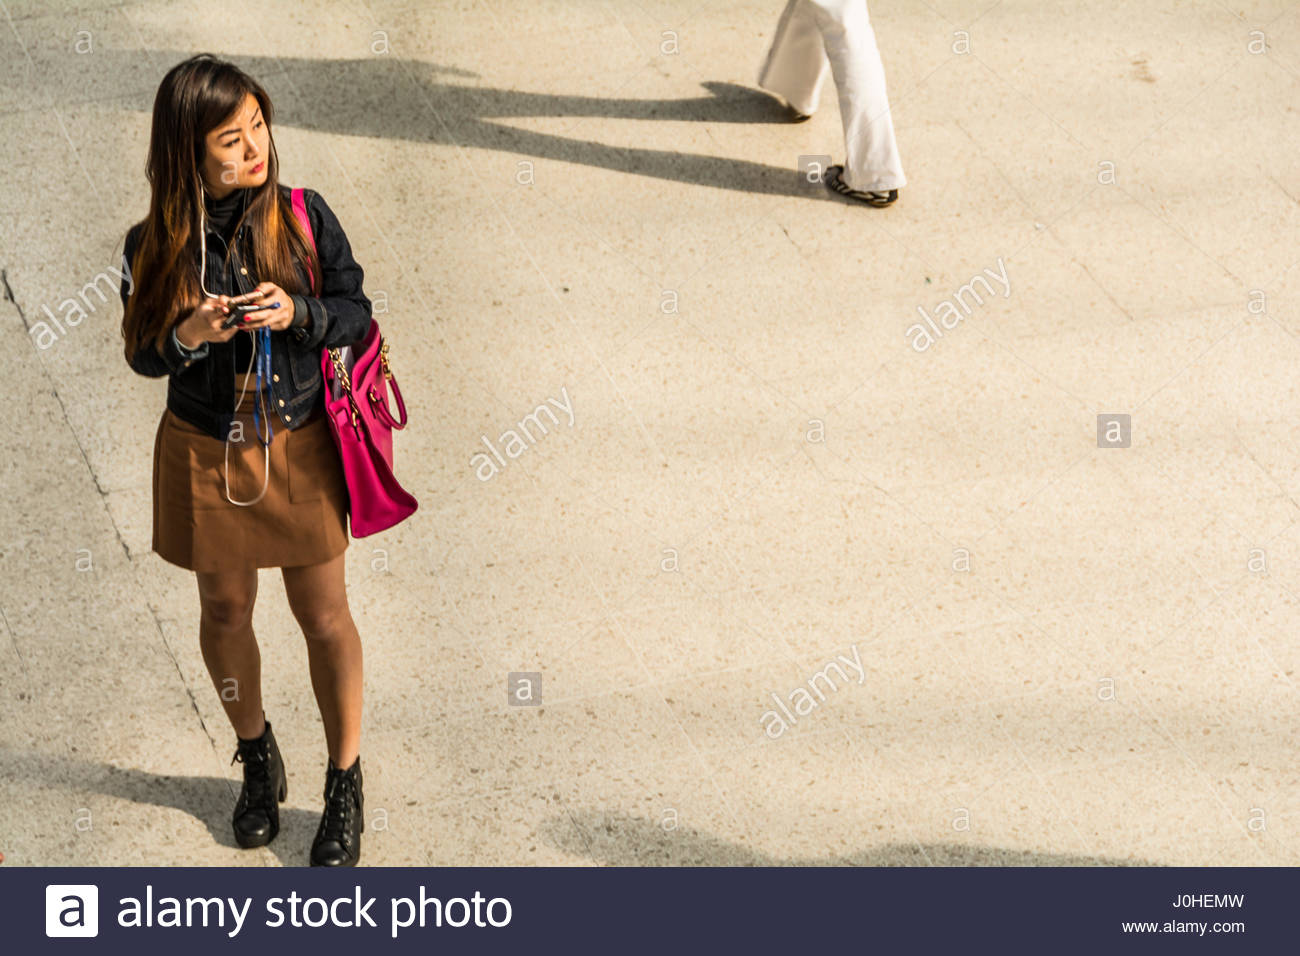 Mini Skirt Boots Stock Photos Amp Mini Skirt Boots Stock